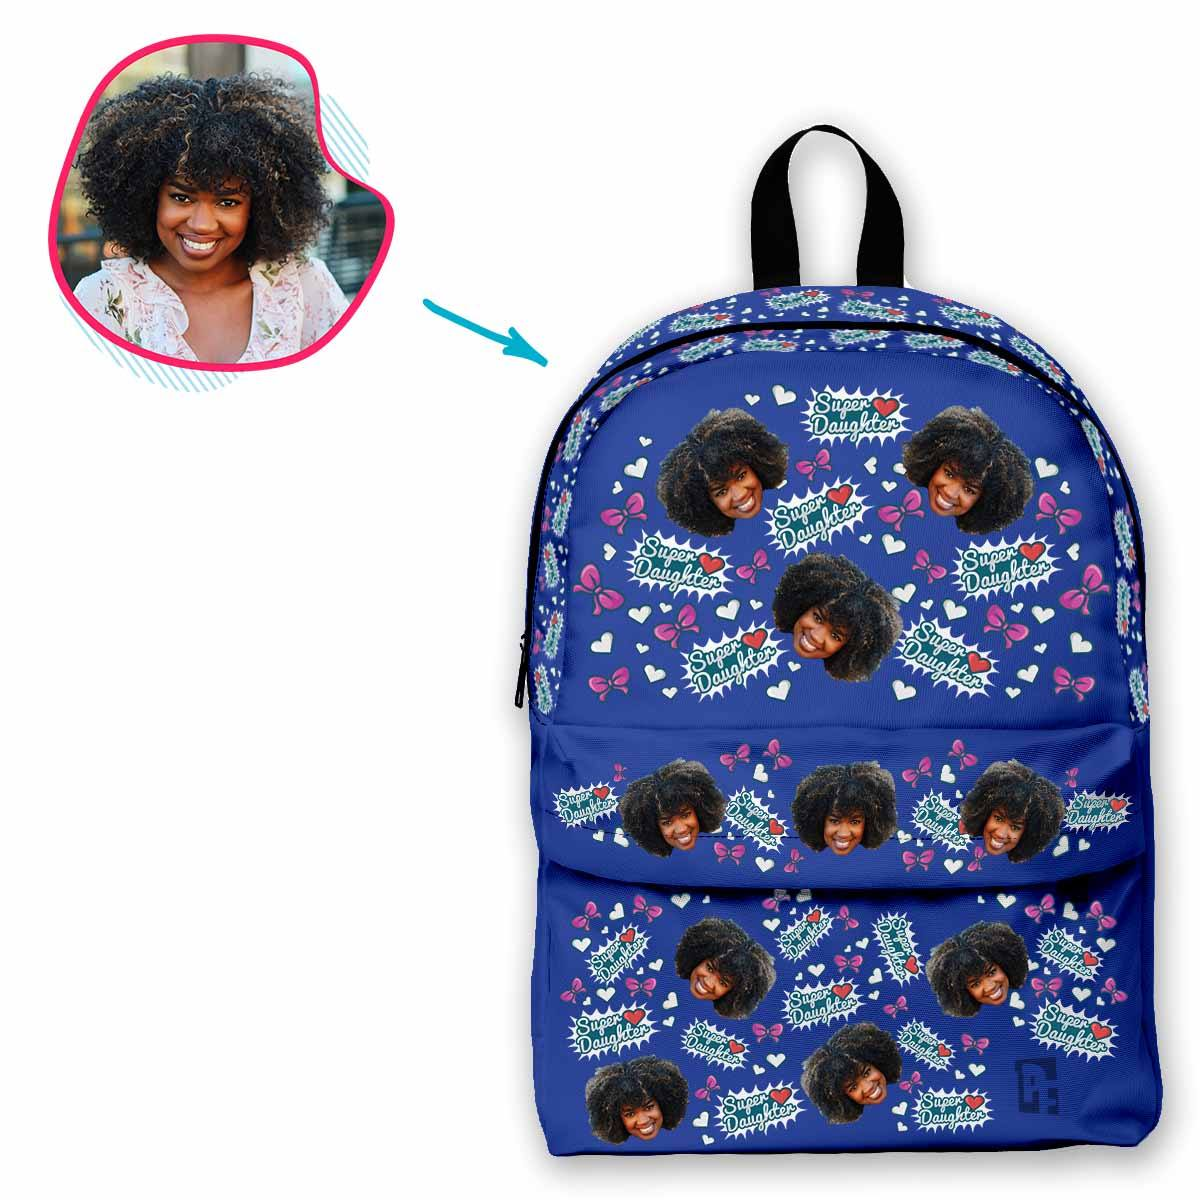 darkblue Super Daughter classic backpack personalized with photo of face printed on it